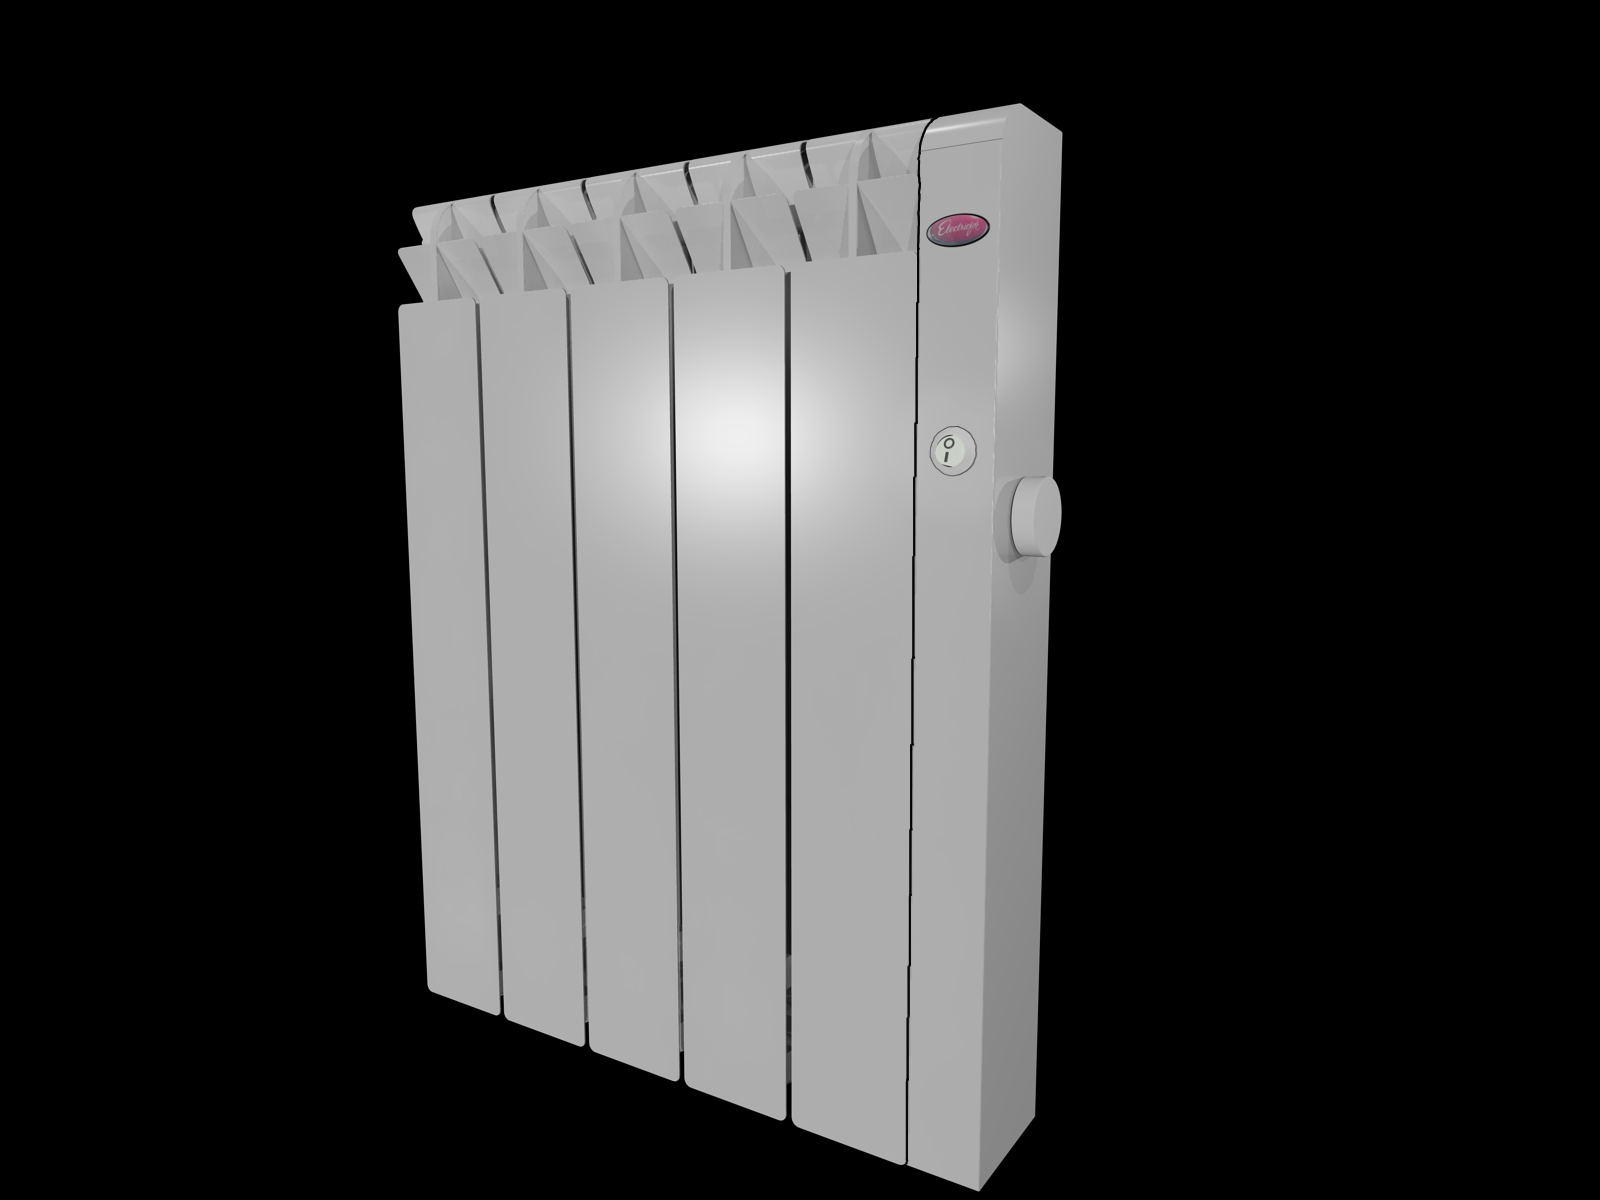 New Range of Aluminium Radiators with an Electric Heating Element